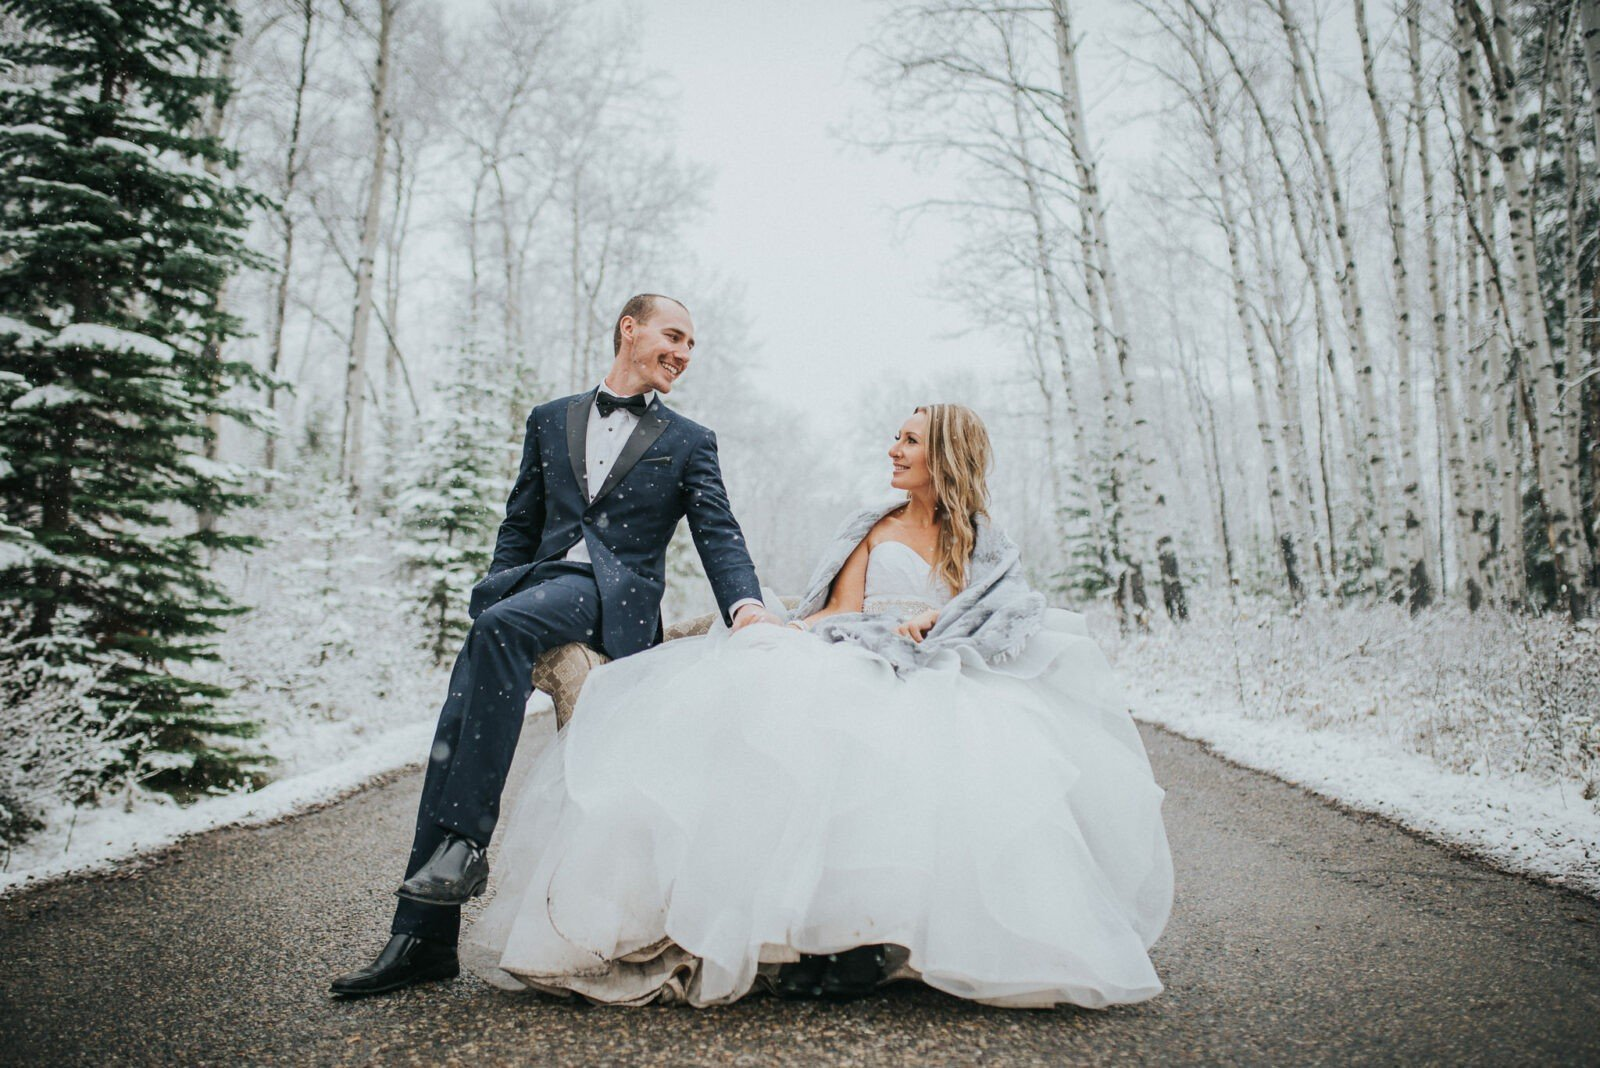 Bride and groom in magical snowstorm near pyramid lake in Jasper National Park